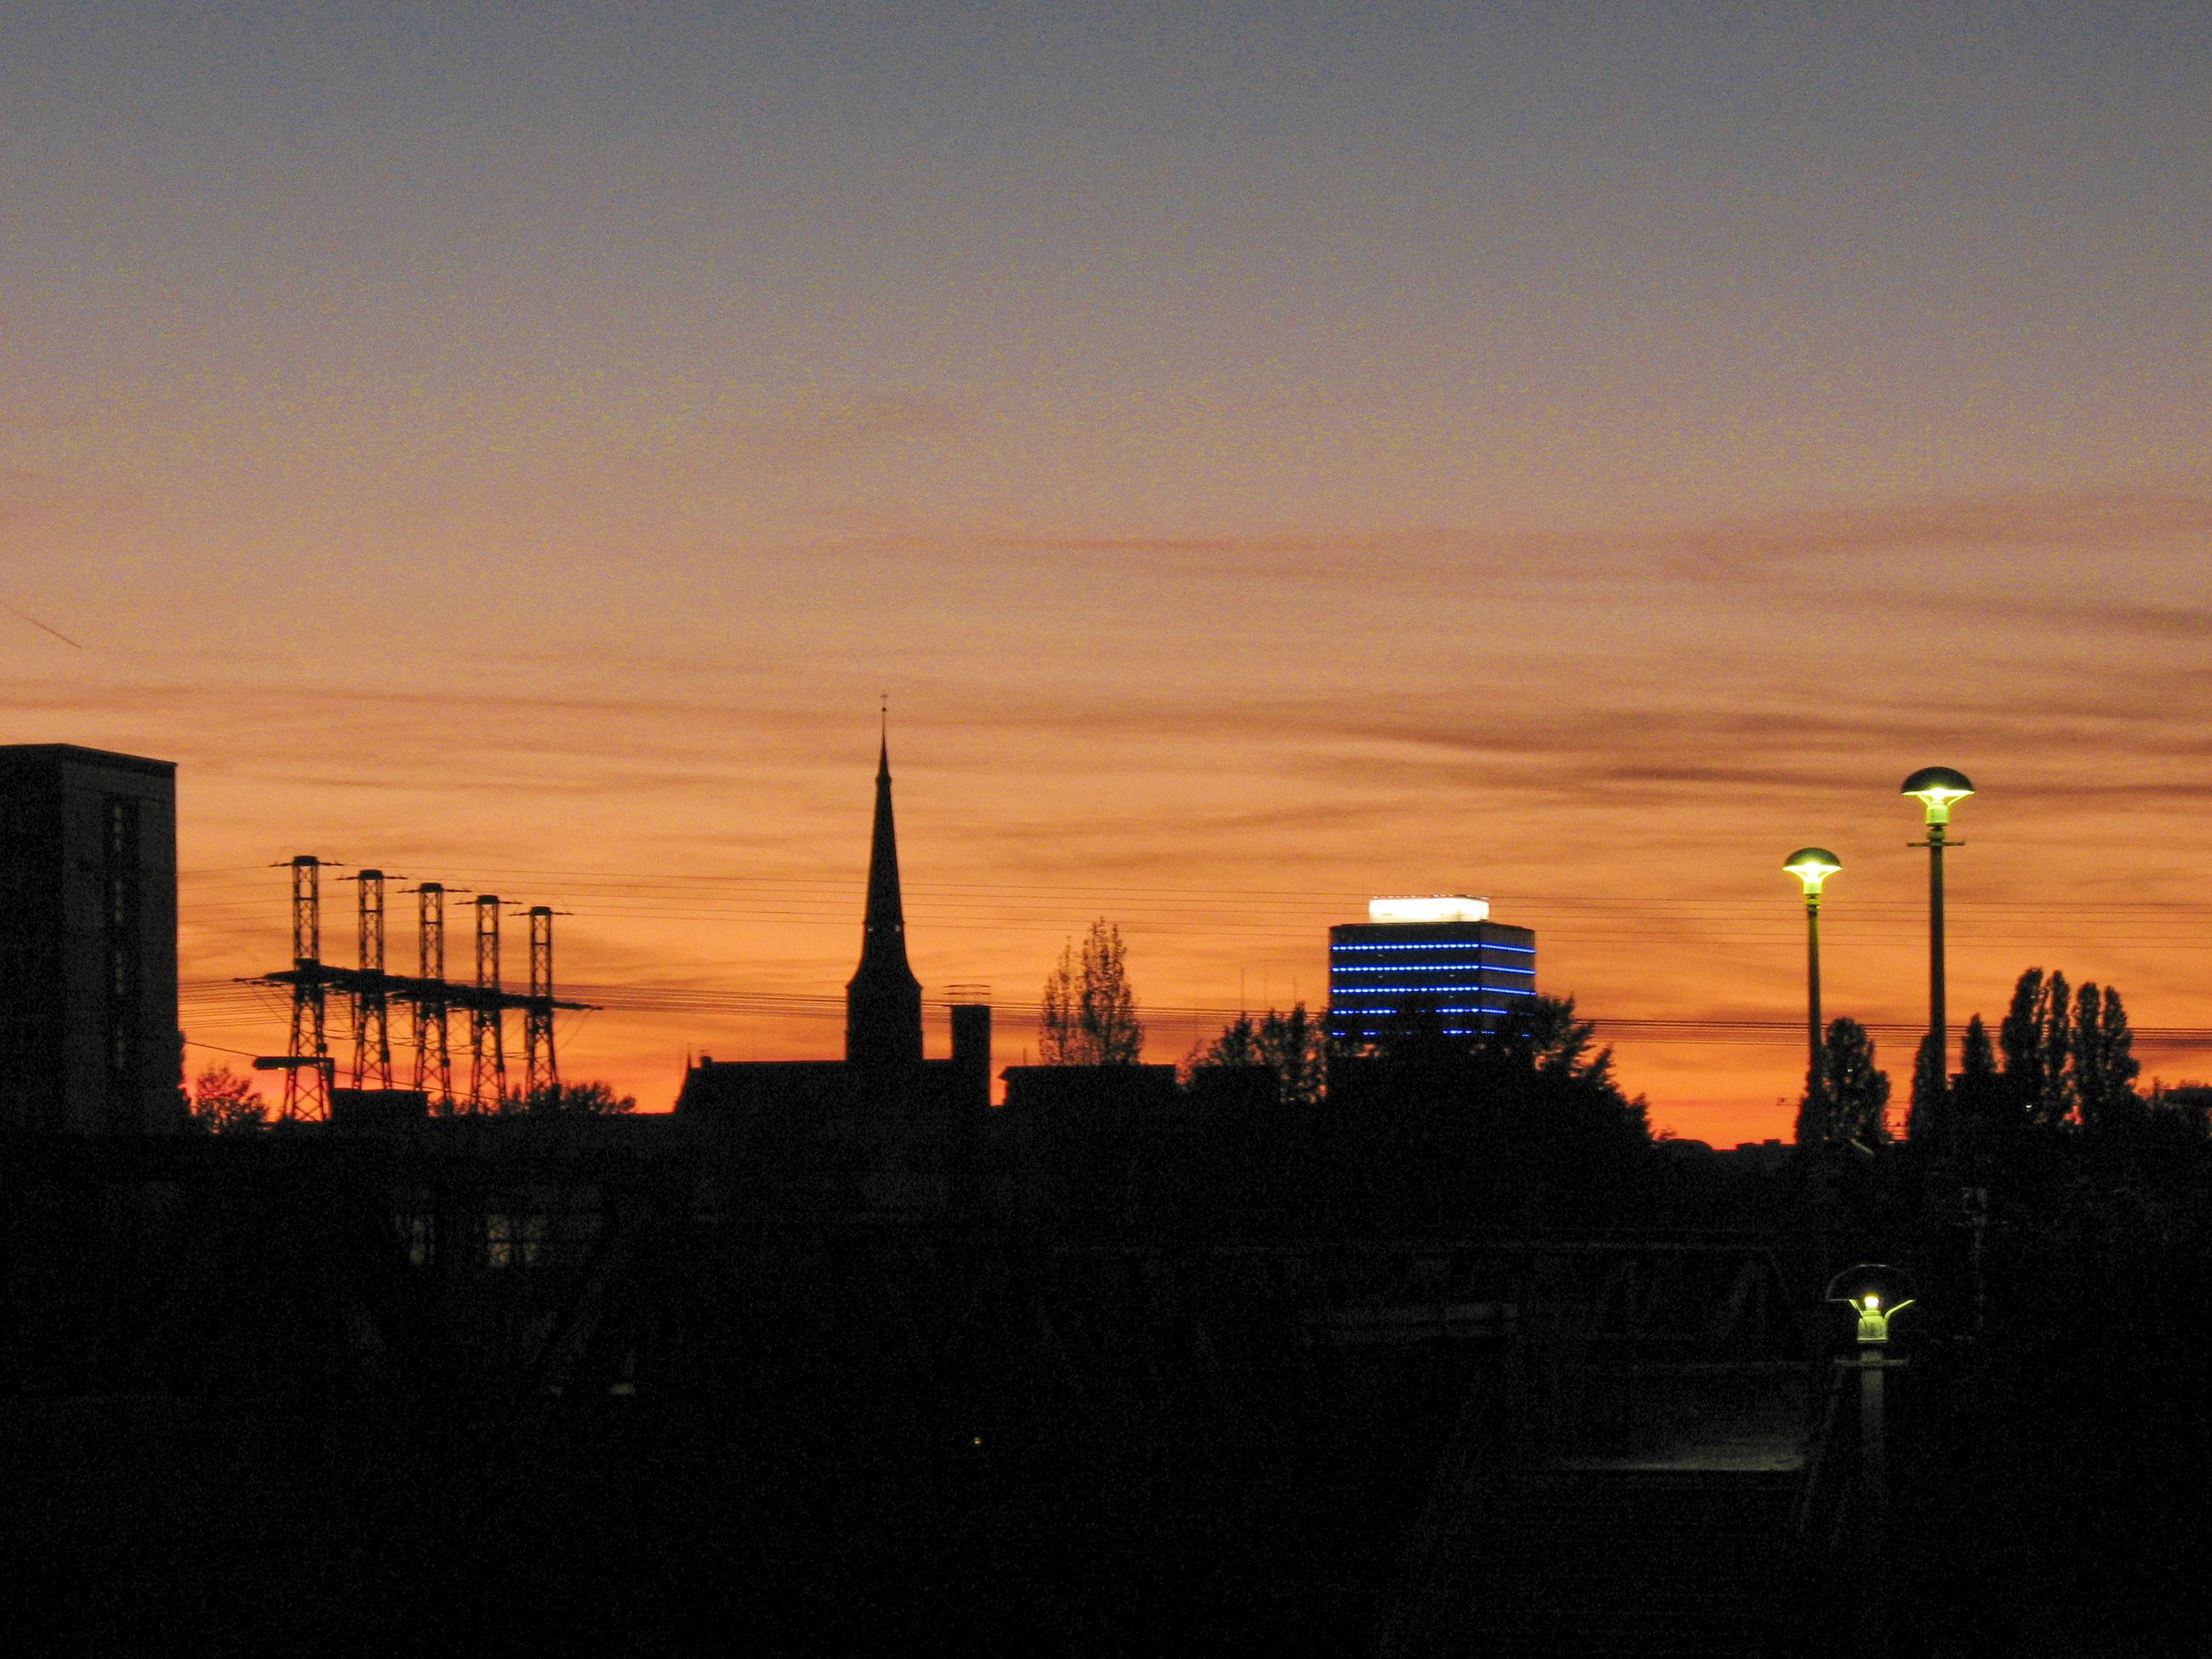 sunset, building exterior, architecture, built structure, silhouette, orange color, tower, city, copy space, sky, communications tower, clear sky, dusk, tall - high, spire, outdoors, street light, no people, cityscape, building